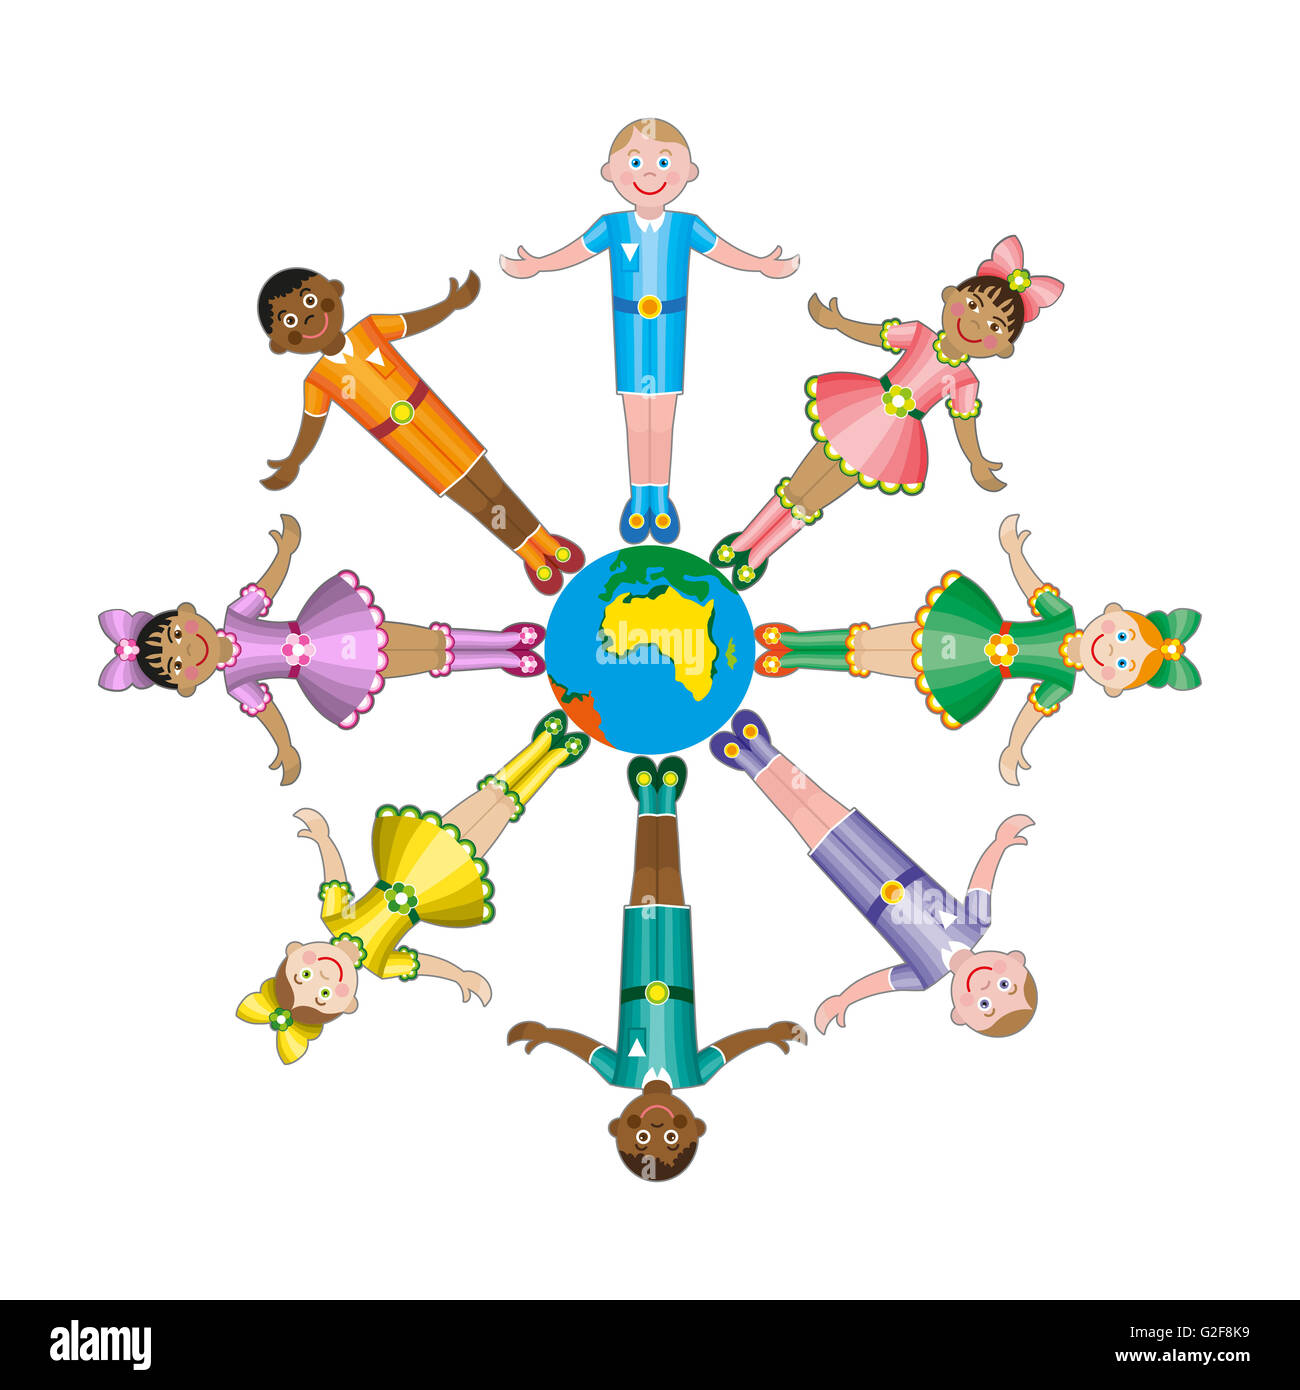 Circle of happy children different races - Stock Image